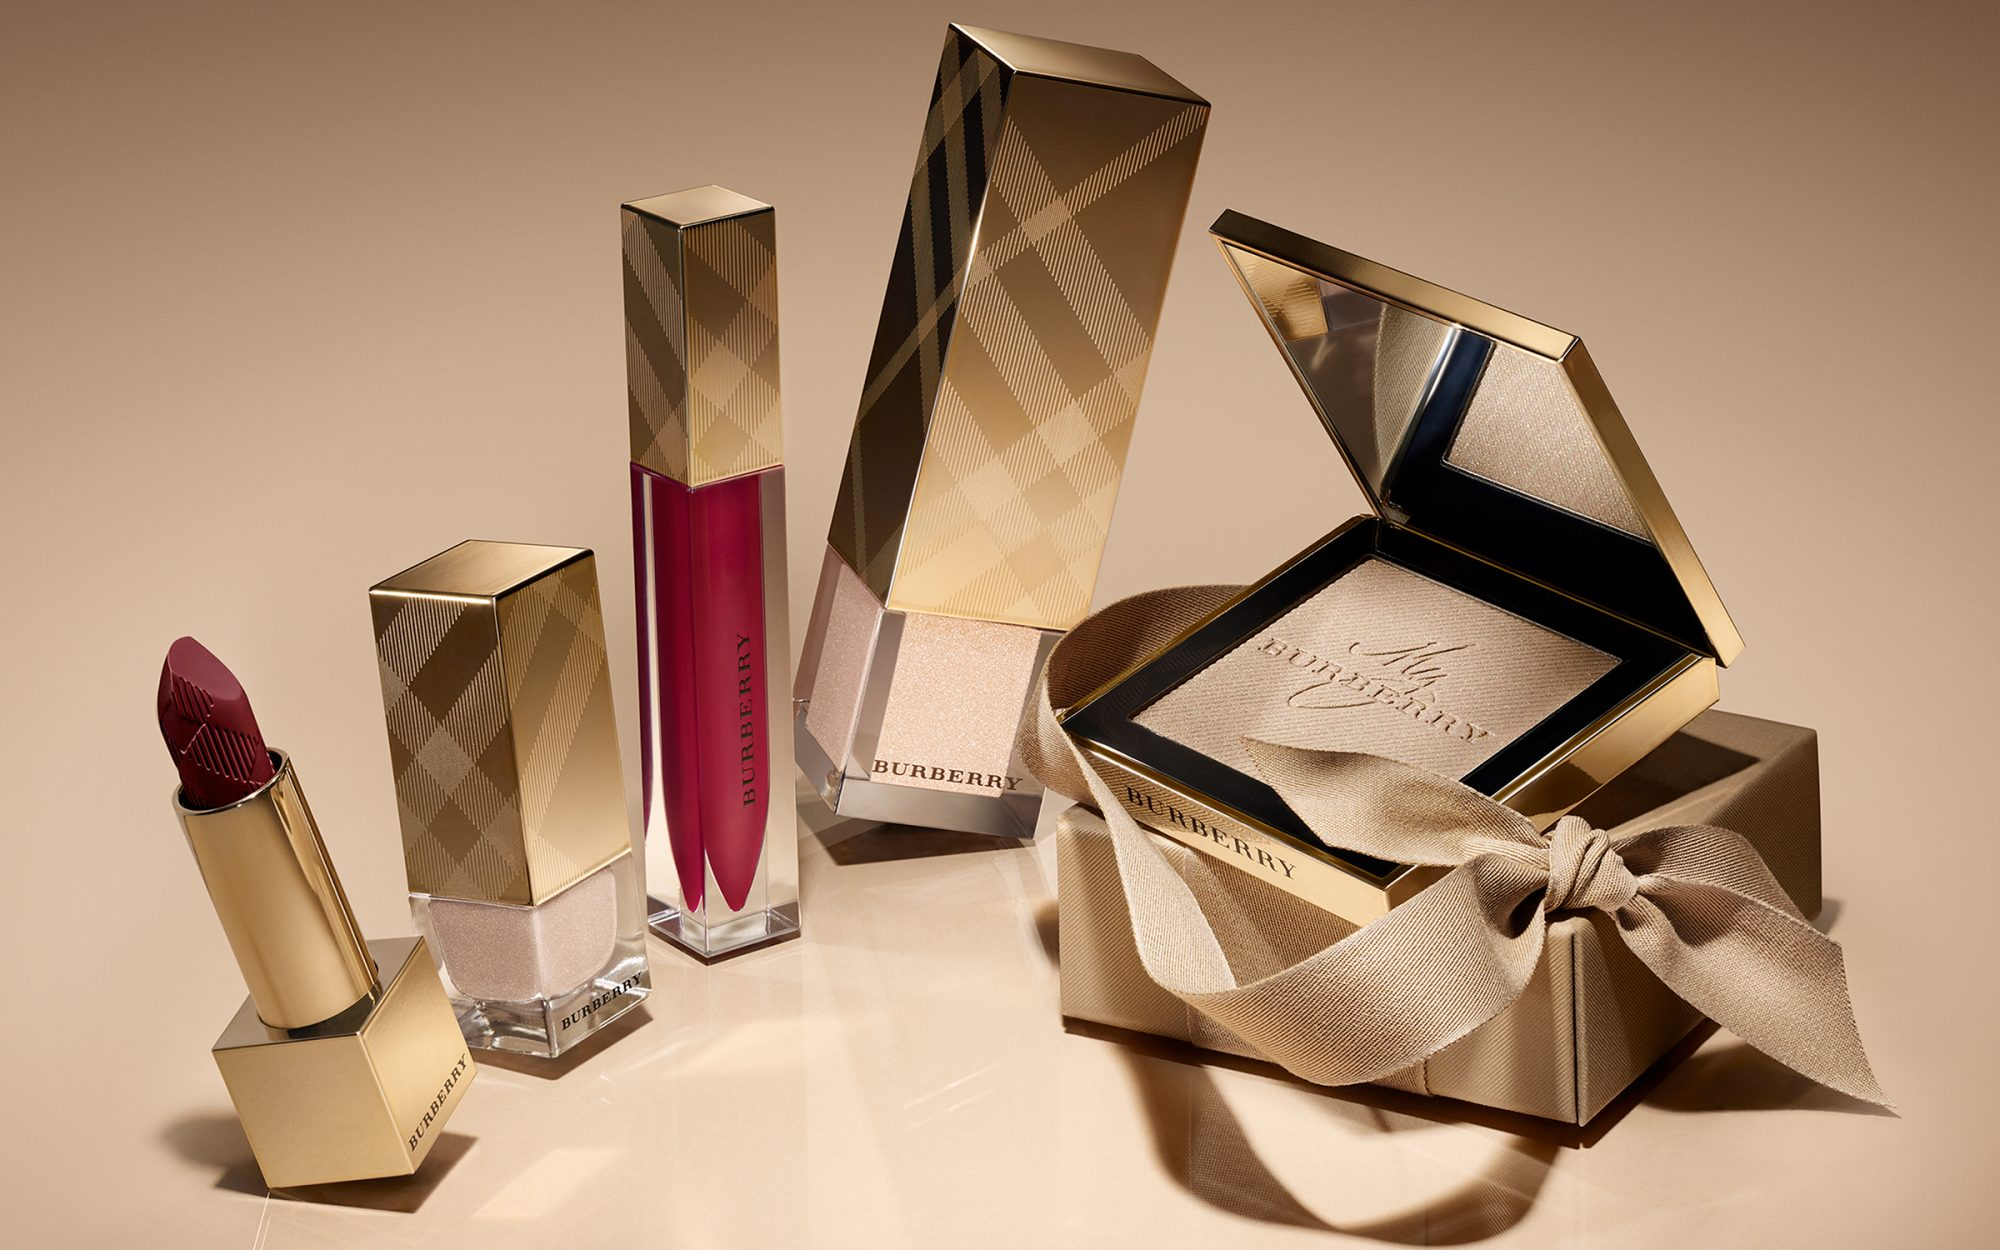 Best Beauty Gifts for Travelers: Burberry Winter Glow Collection